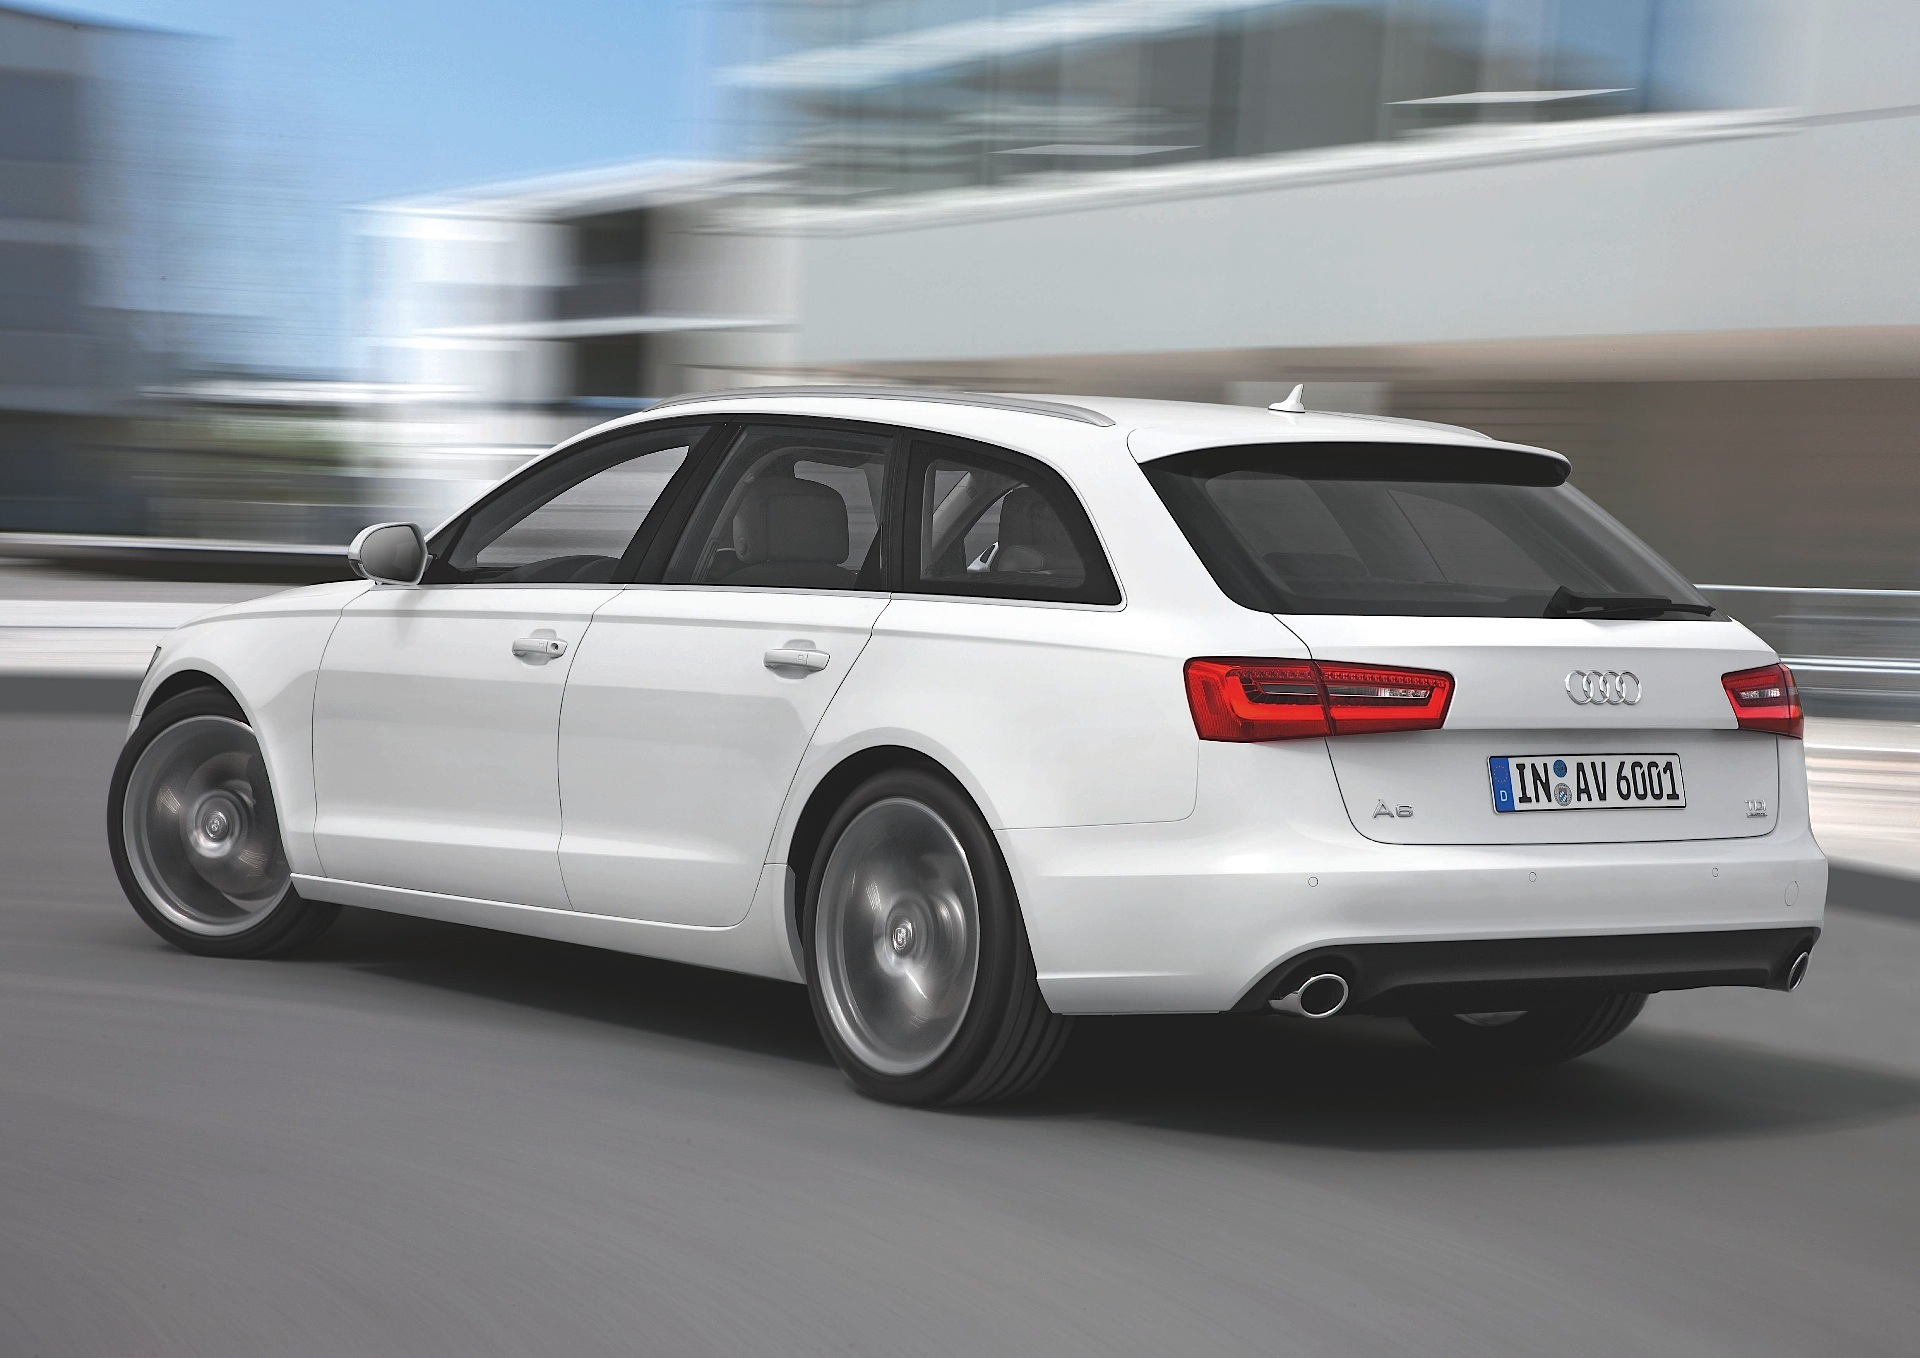 Audi a4 s line station wagon 2015 reviews 10